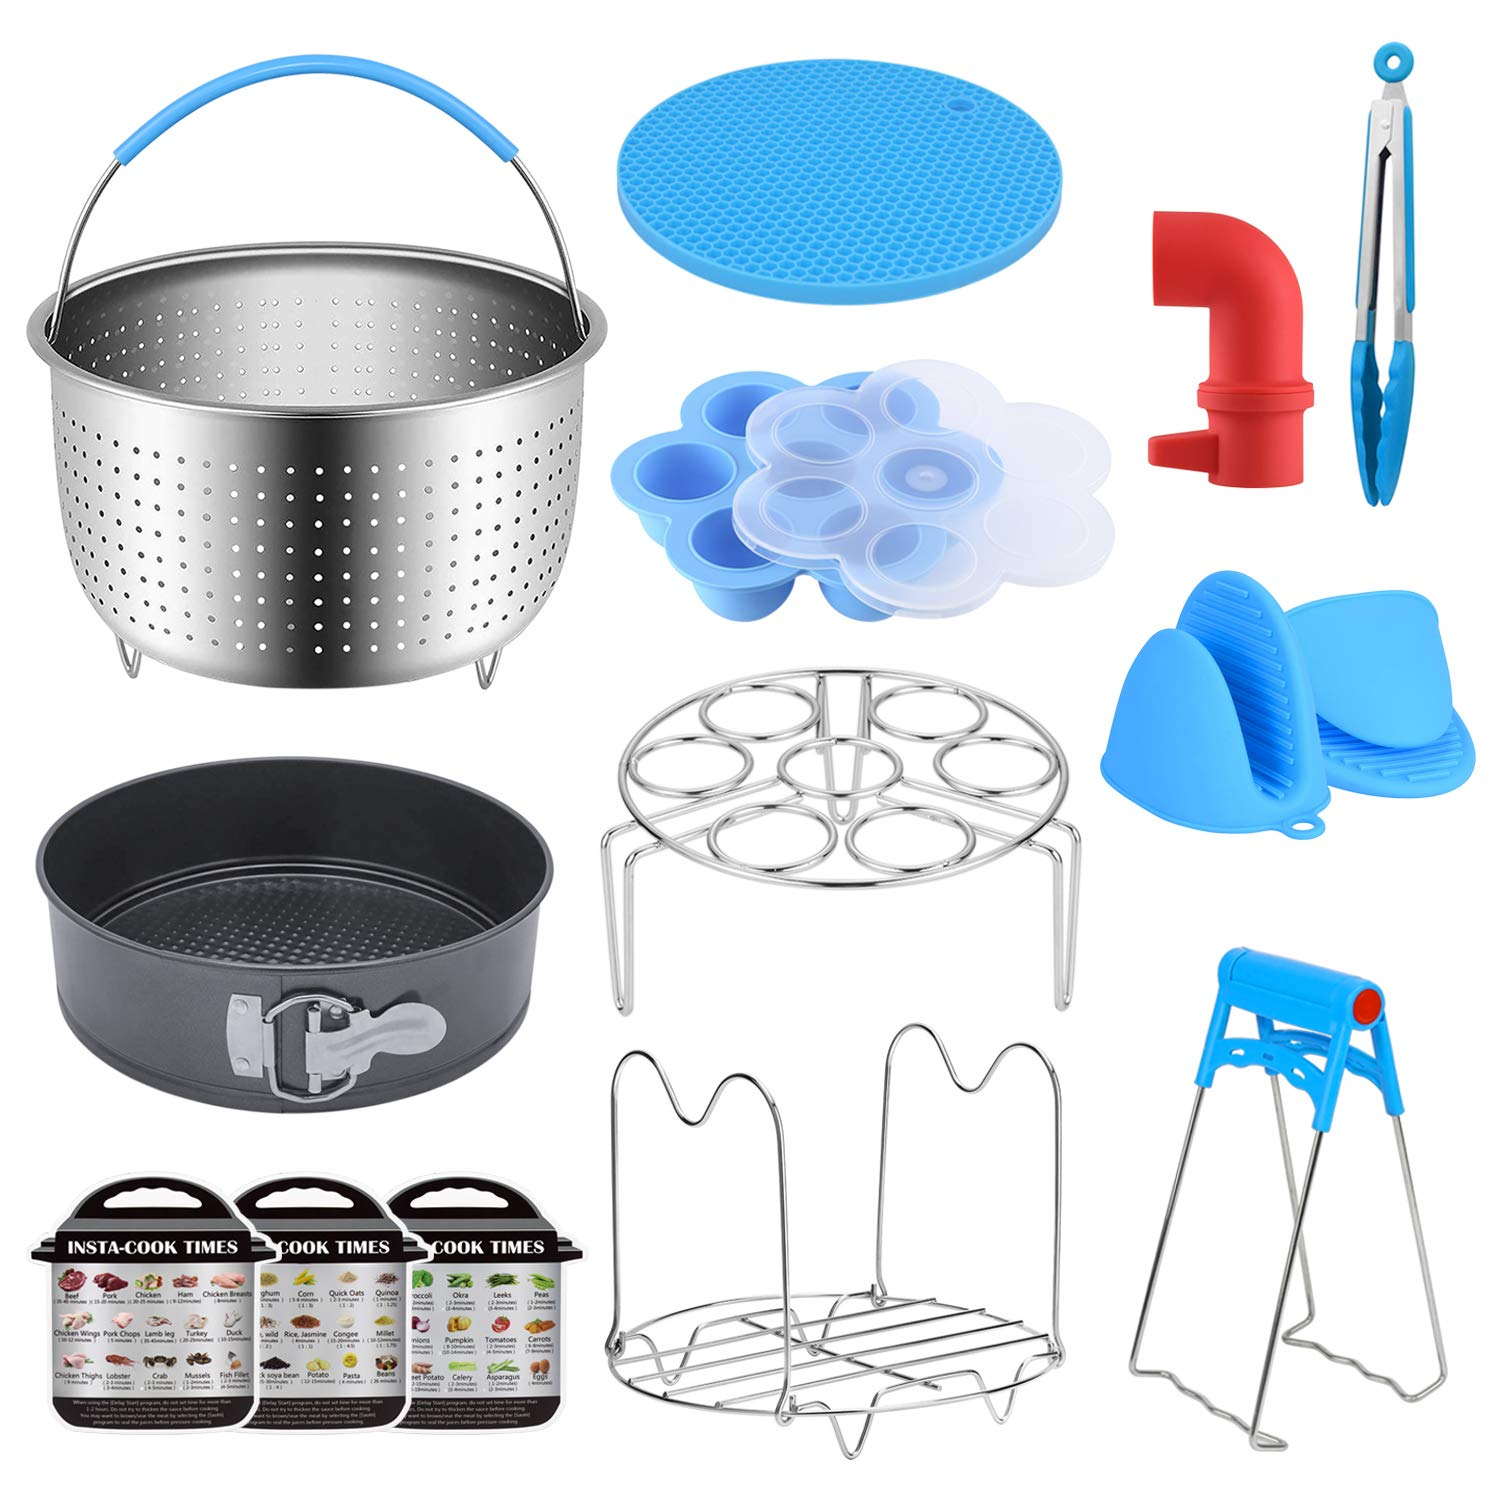 KMIKE 15 Pcs Instant Pot Accessories 5, 6,8 Qt - Pressure Cooker Accessories Set Steamer Basket, Springform Pan, Egg Bites Mold, Dish Plate Clip, Egg Steamer Rack, Oven Mitts, 3 Cheat Sheet Magnets